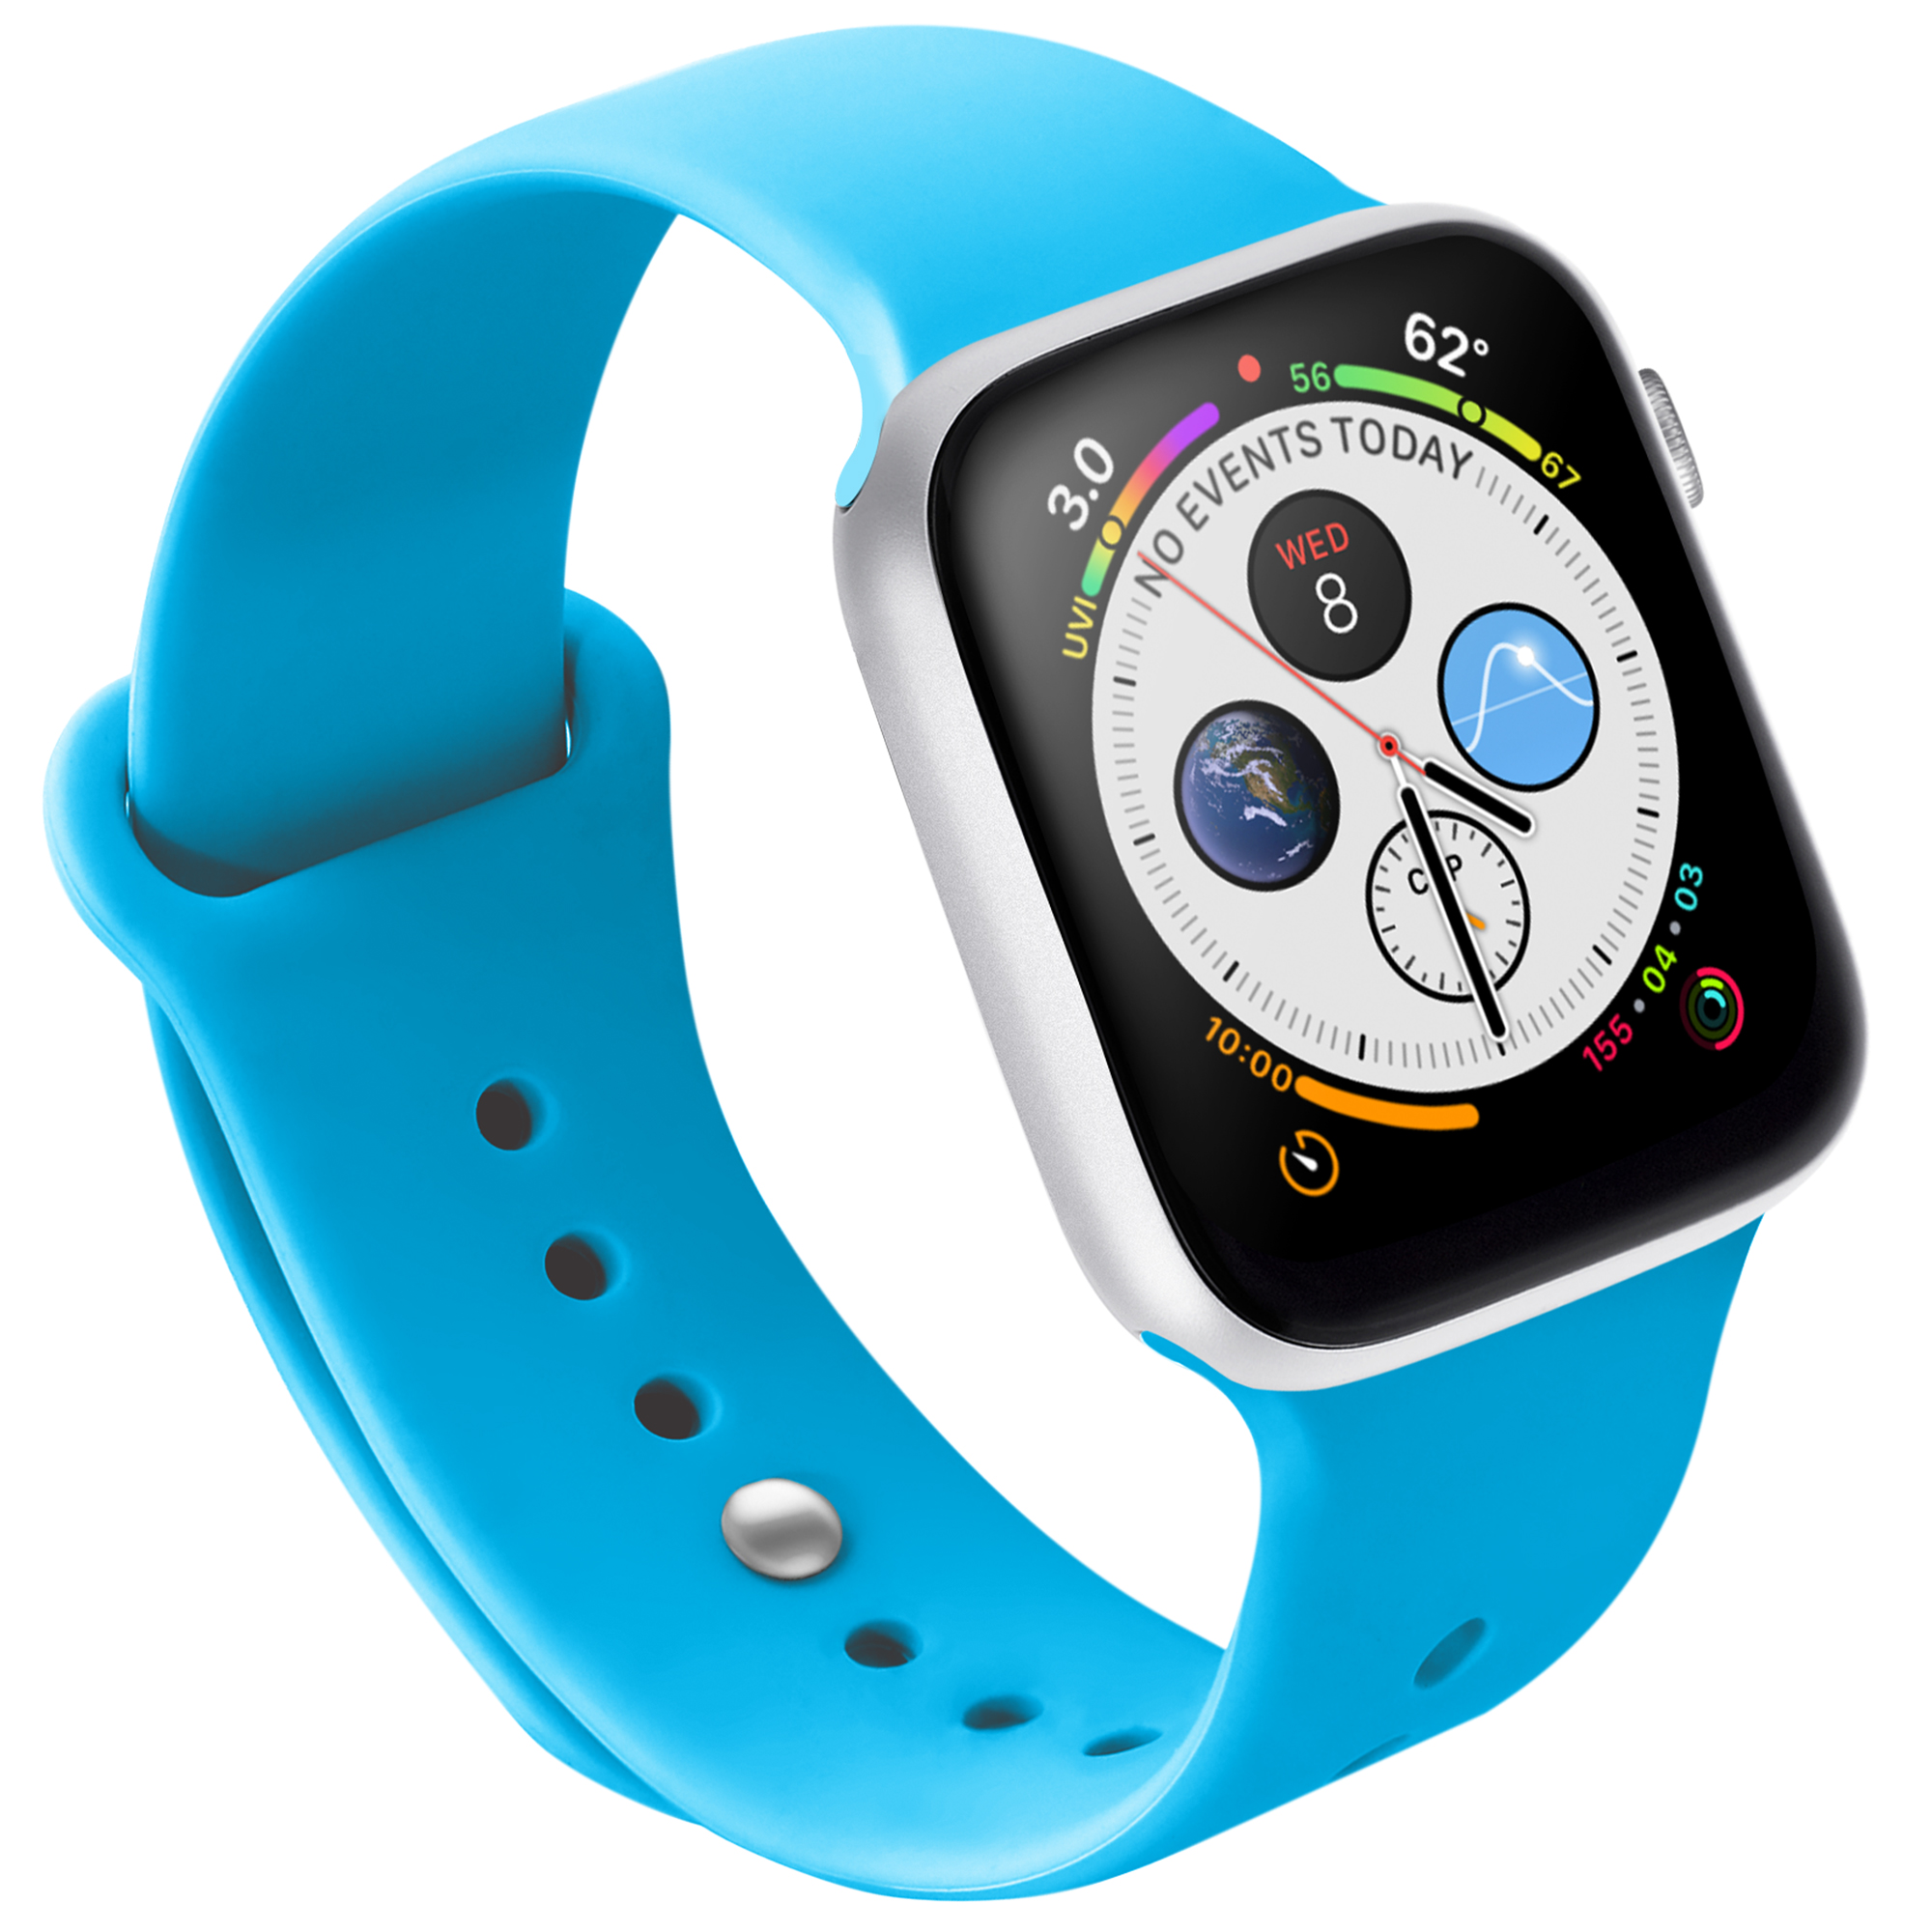 Naztech Silicone Band for Apple Watch (42/44mm) - Blue